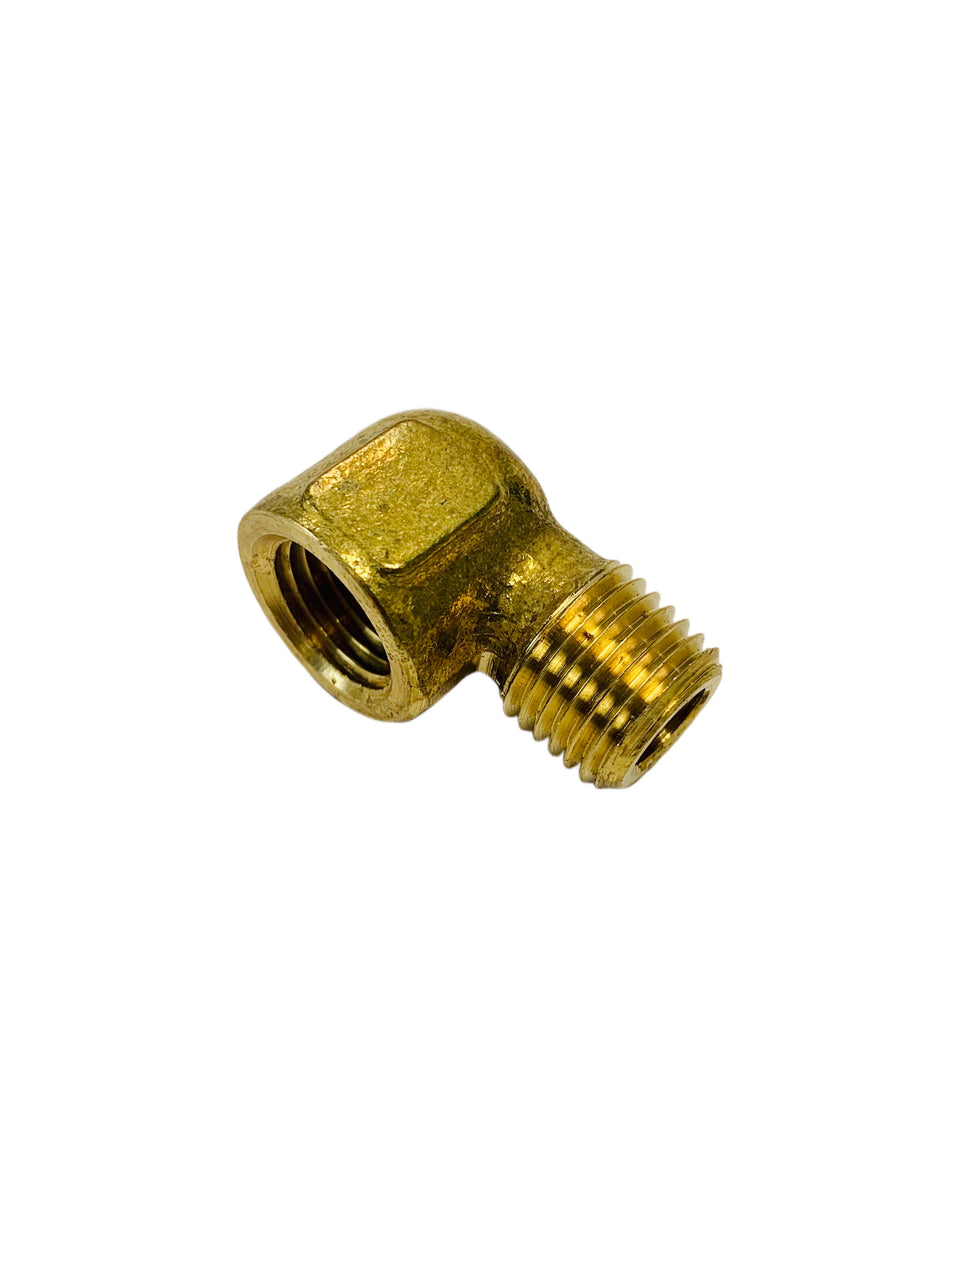 "Brass P-310-4 Male to Female 90° Connecter 1/4"" x 1/4"" Adapter Fitting"